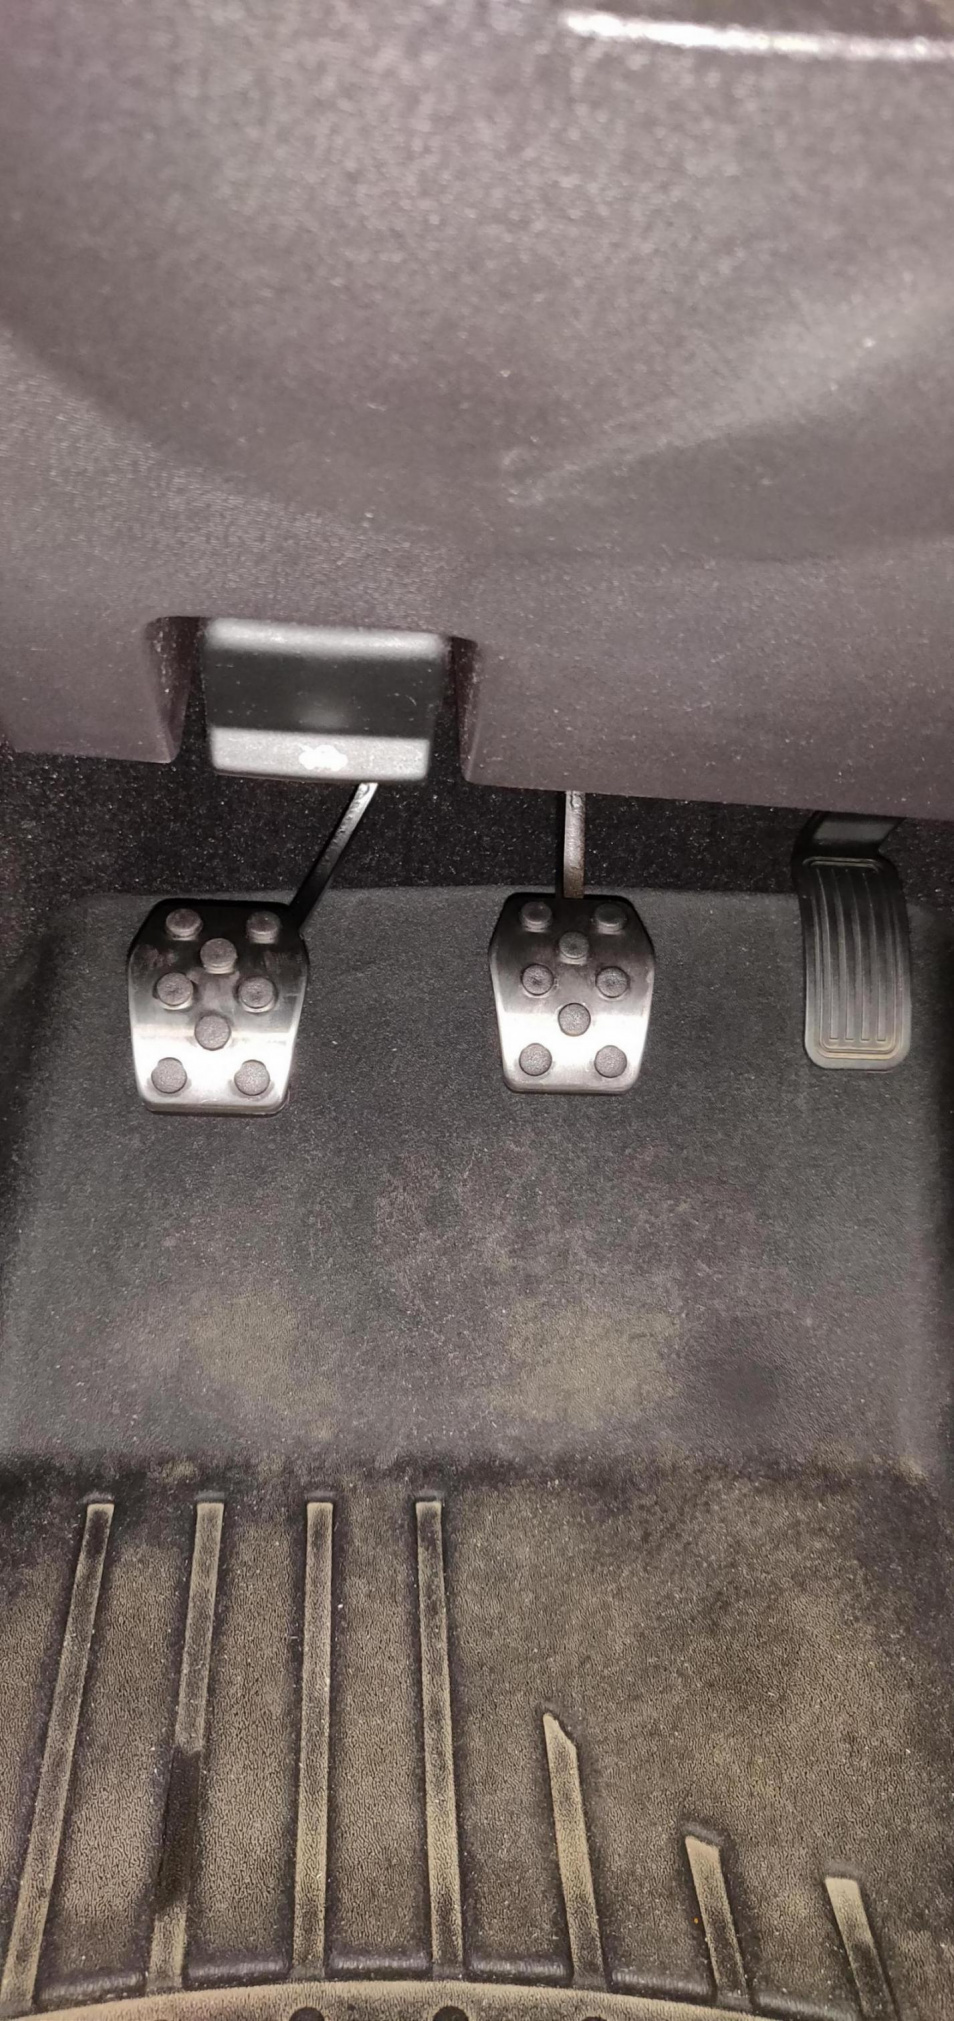 SVT pedals will fit 00-11' (US, 5spd models)-img_20190718_203939_1563498142828.jpg